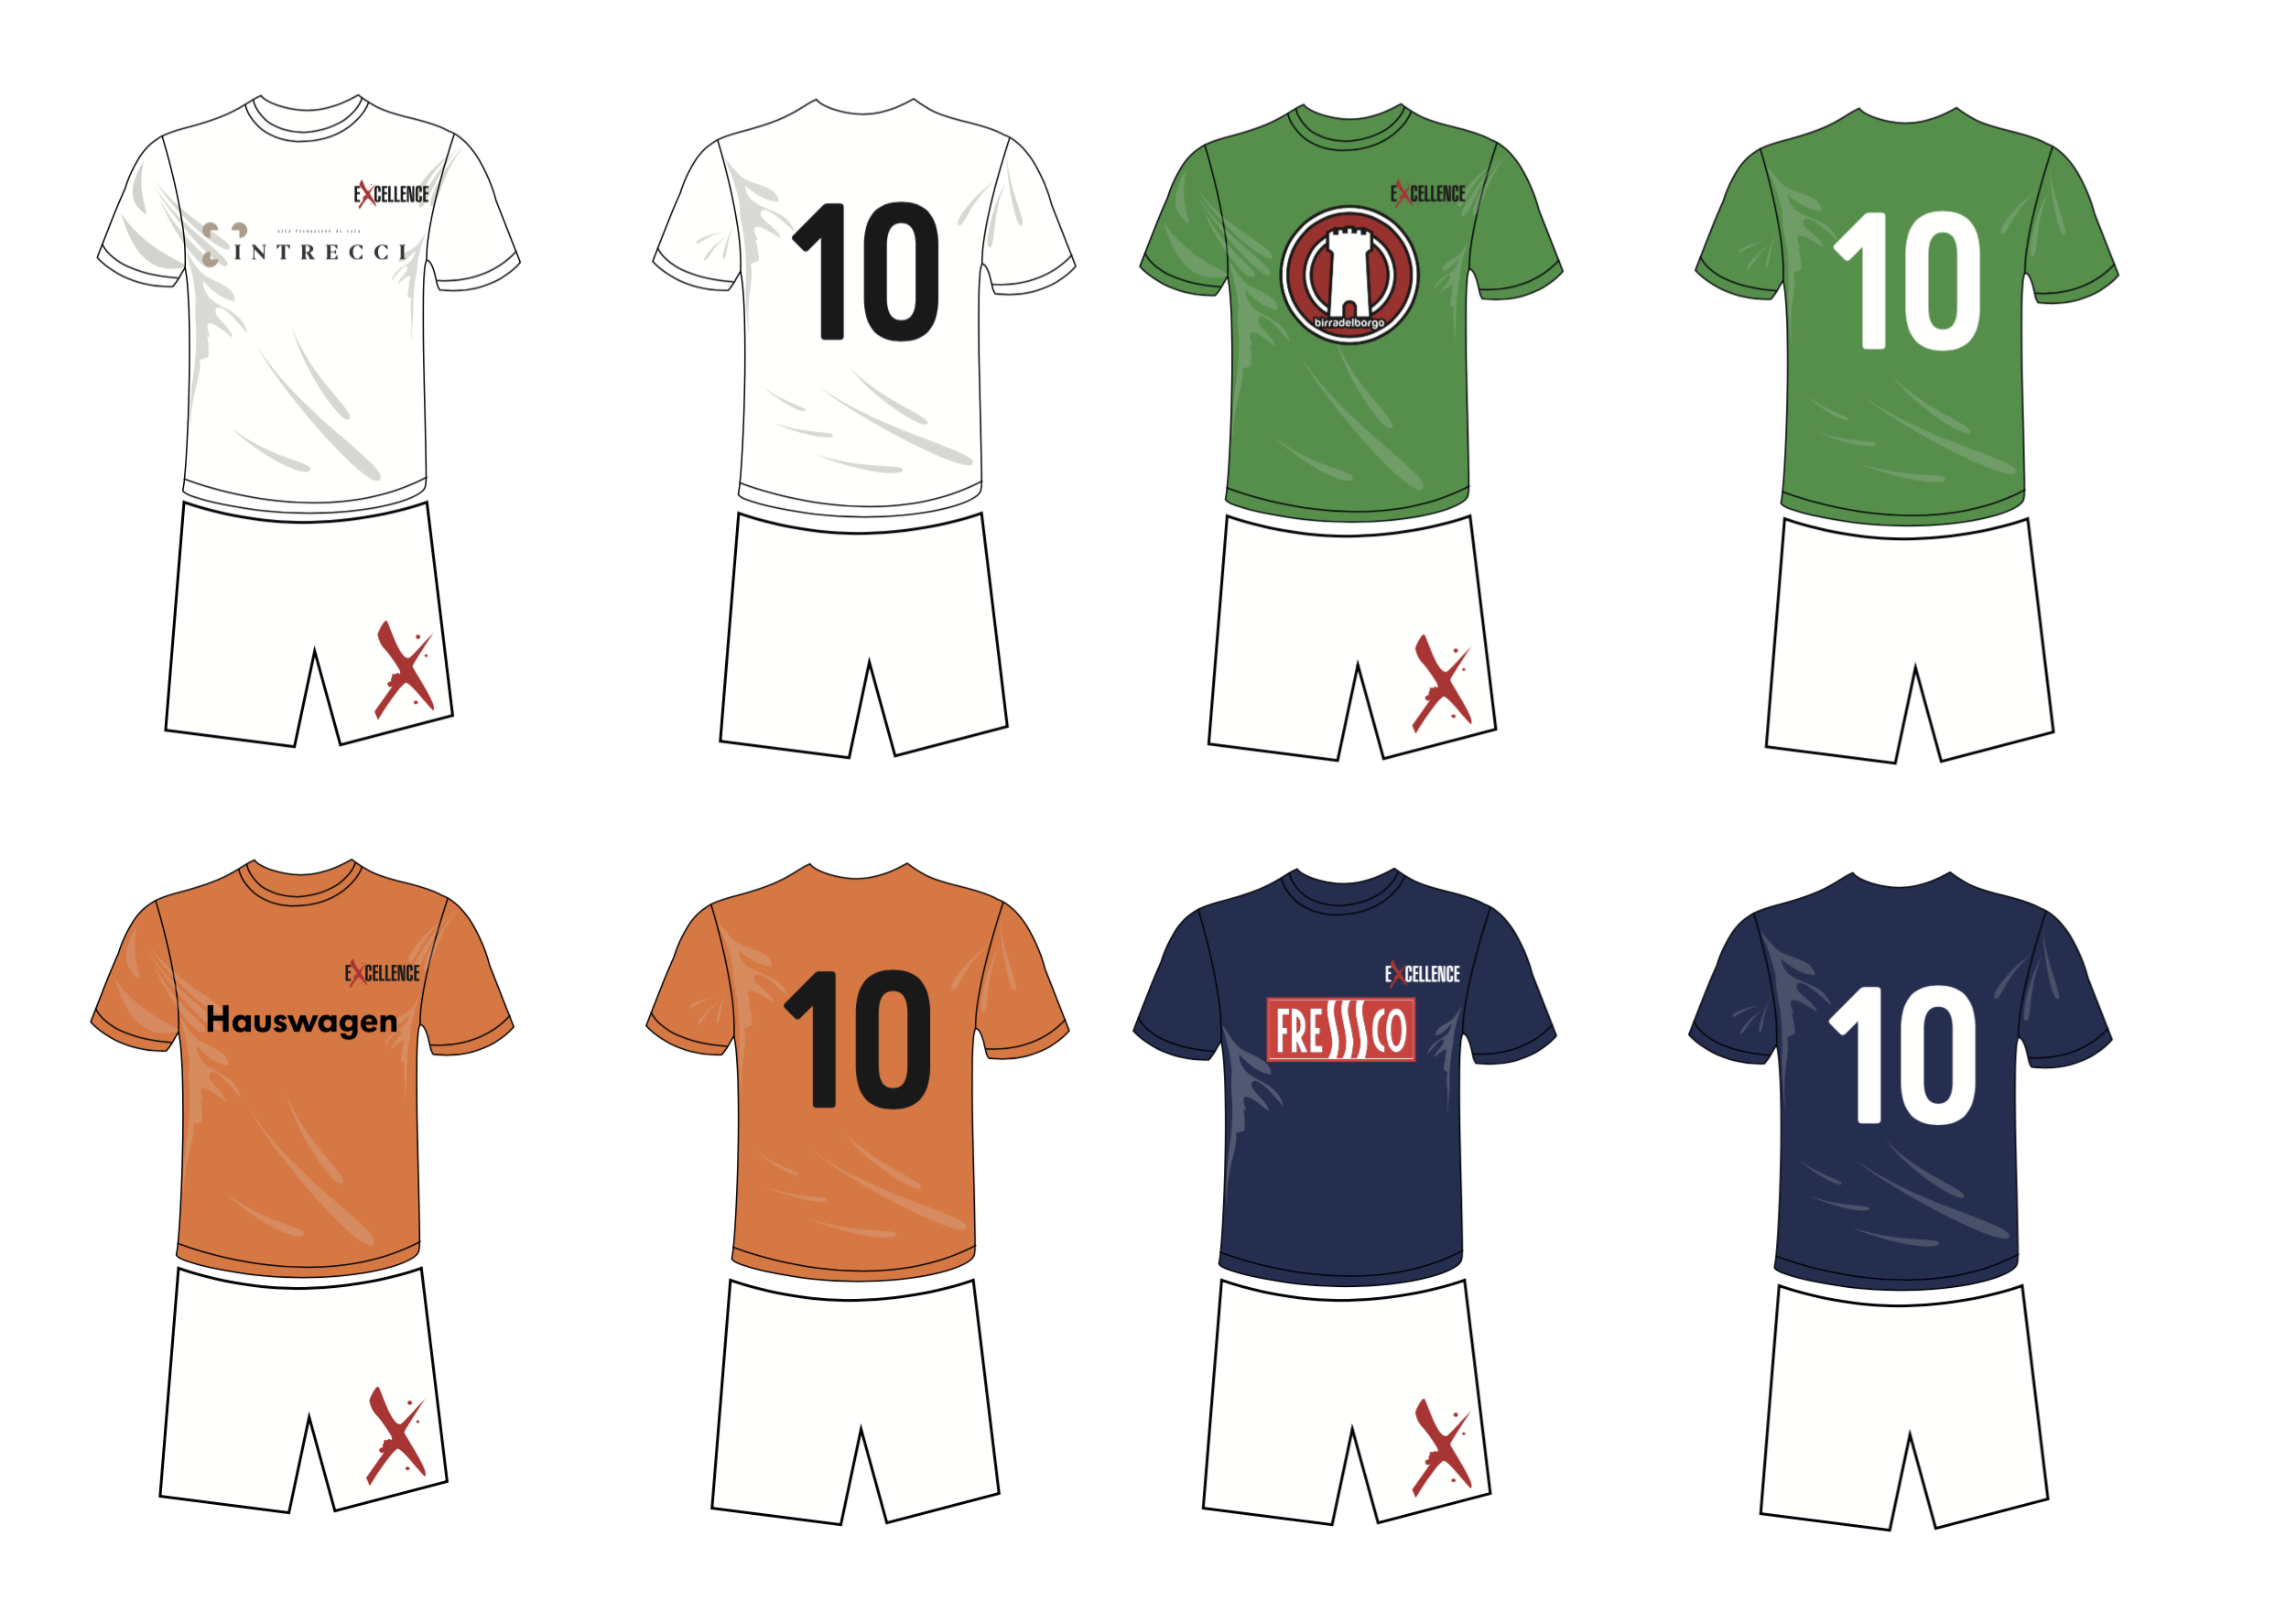 Le t-shirt di Excellence Foodball Cup